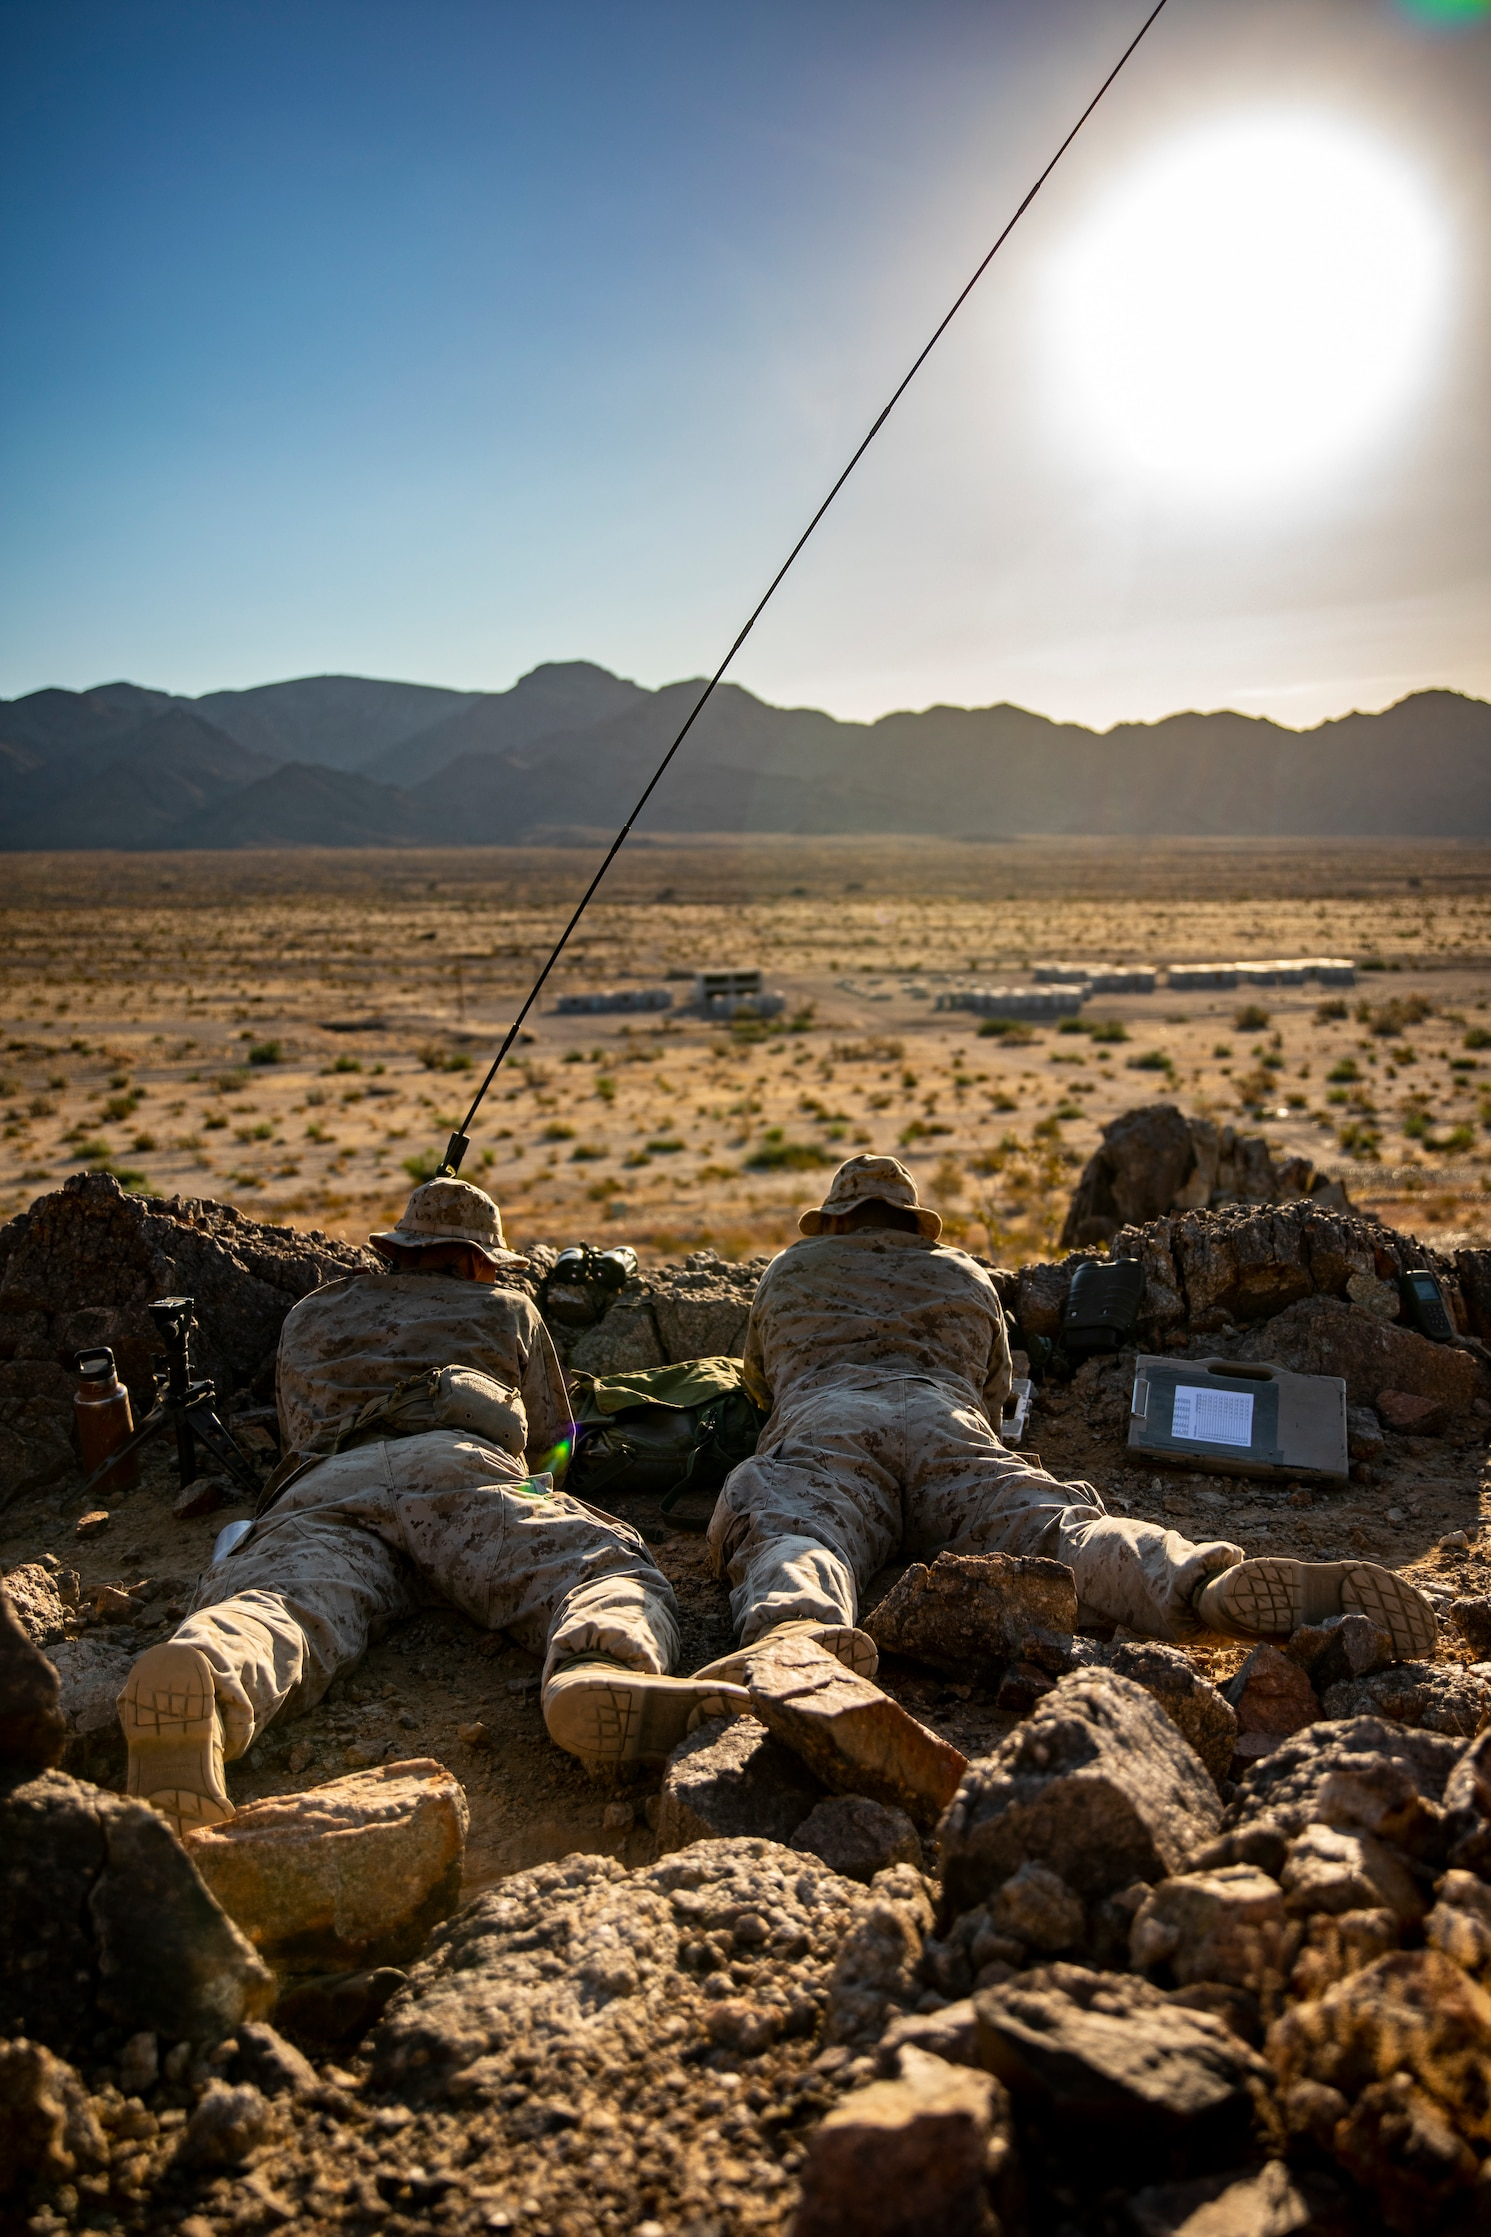 U.S. Marines with Scout Sniper Platoon, 1st Battalion, 25th Marine Regiment, 4th Marine Division, call in coordinates for a call-for-fire drill at Marine Corps Air Ground Combat Center Twentynine Palms, Calif., July 27, 2019, during Integrated Training Exercise 5-19. After ITX 5-19, 1st Battalion, 25th Marine Regiment will be activated and deploy to the Indo-Pacific Command to conduct multiple exercises across the region. ITX measures the unit's ability to provide a cohesive, trained, and ready capability in support of service and Combatant Commander requirements. (U.S. Marine Corps photo by Sgt. Andy O. Martinez)